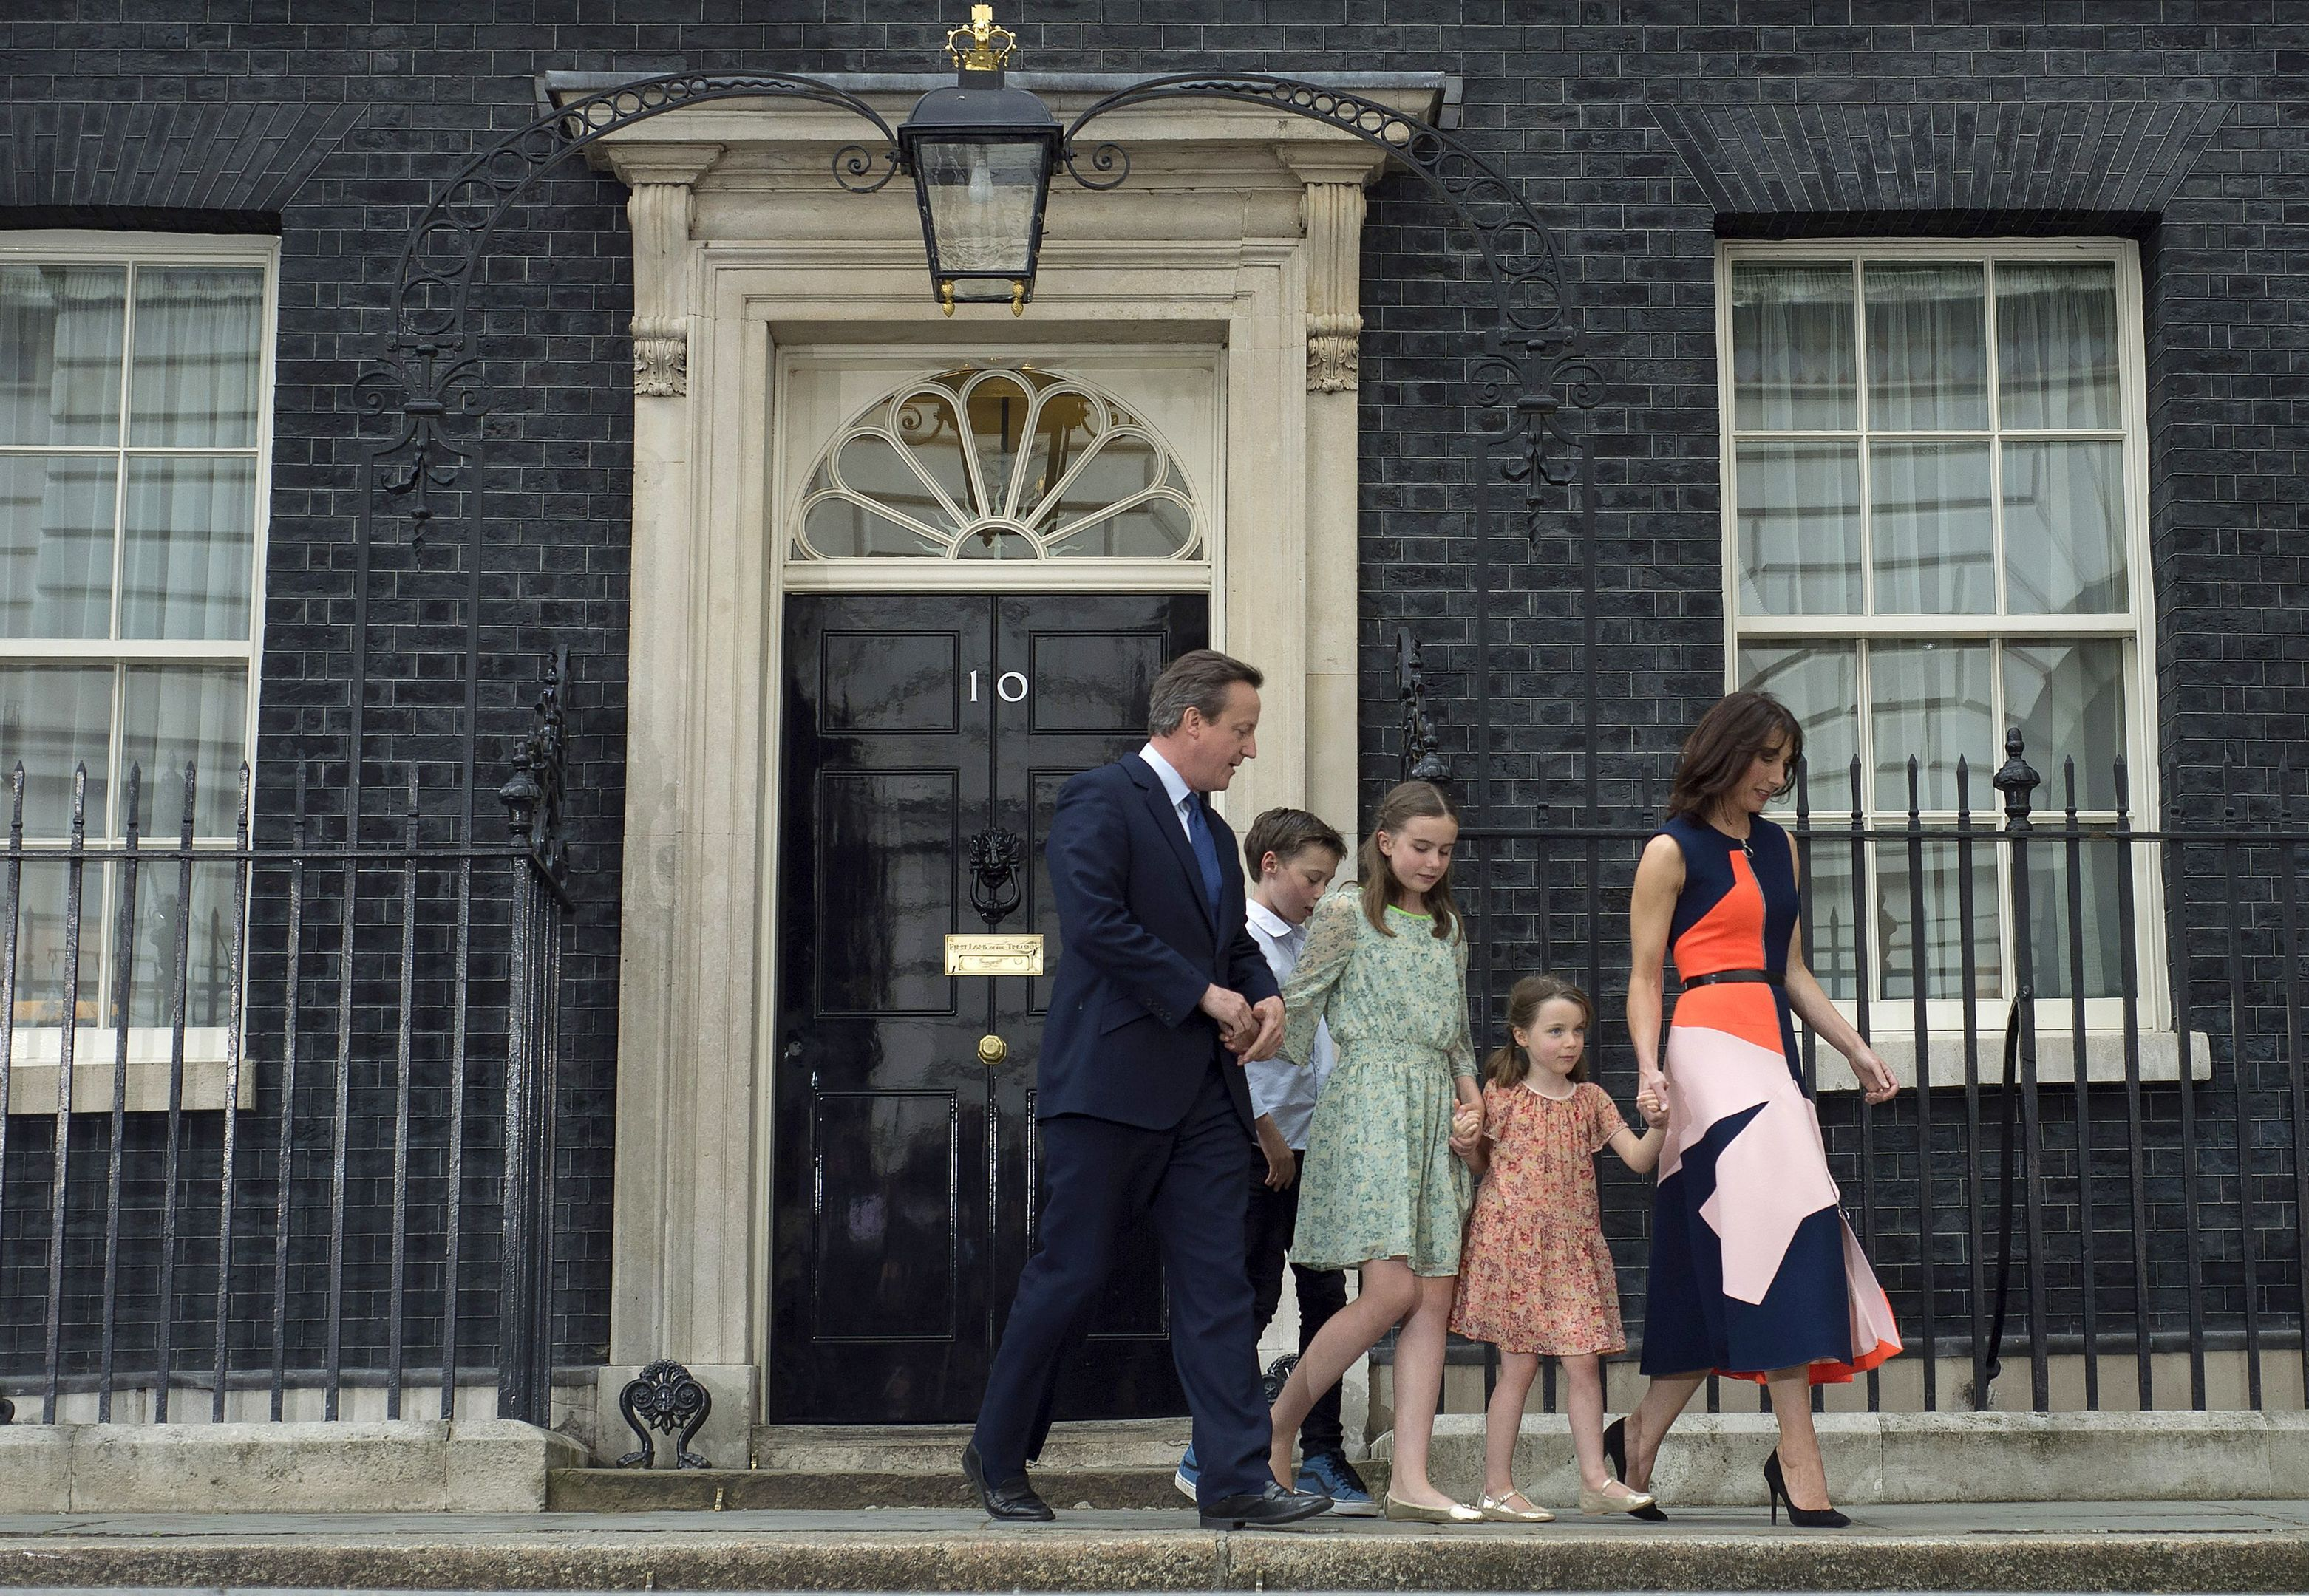 David Cameron with wife Samantha and children Nancy, 12, Elwen, 10, and Florence, 5, outside 10 Downing Street in London before leaving for Buckingham Palace for an audience with the Queen to formally resign.